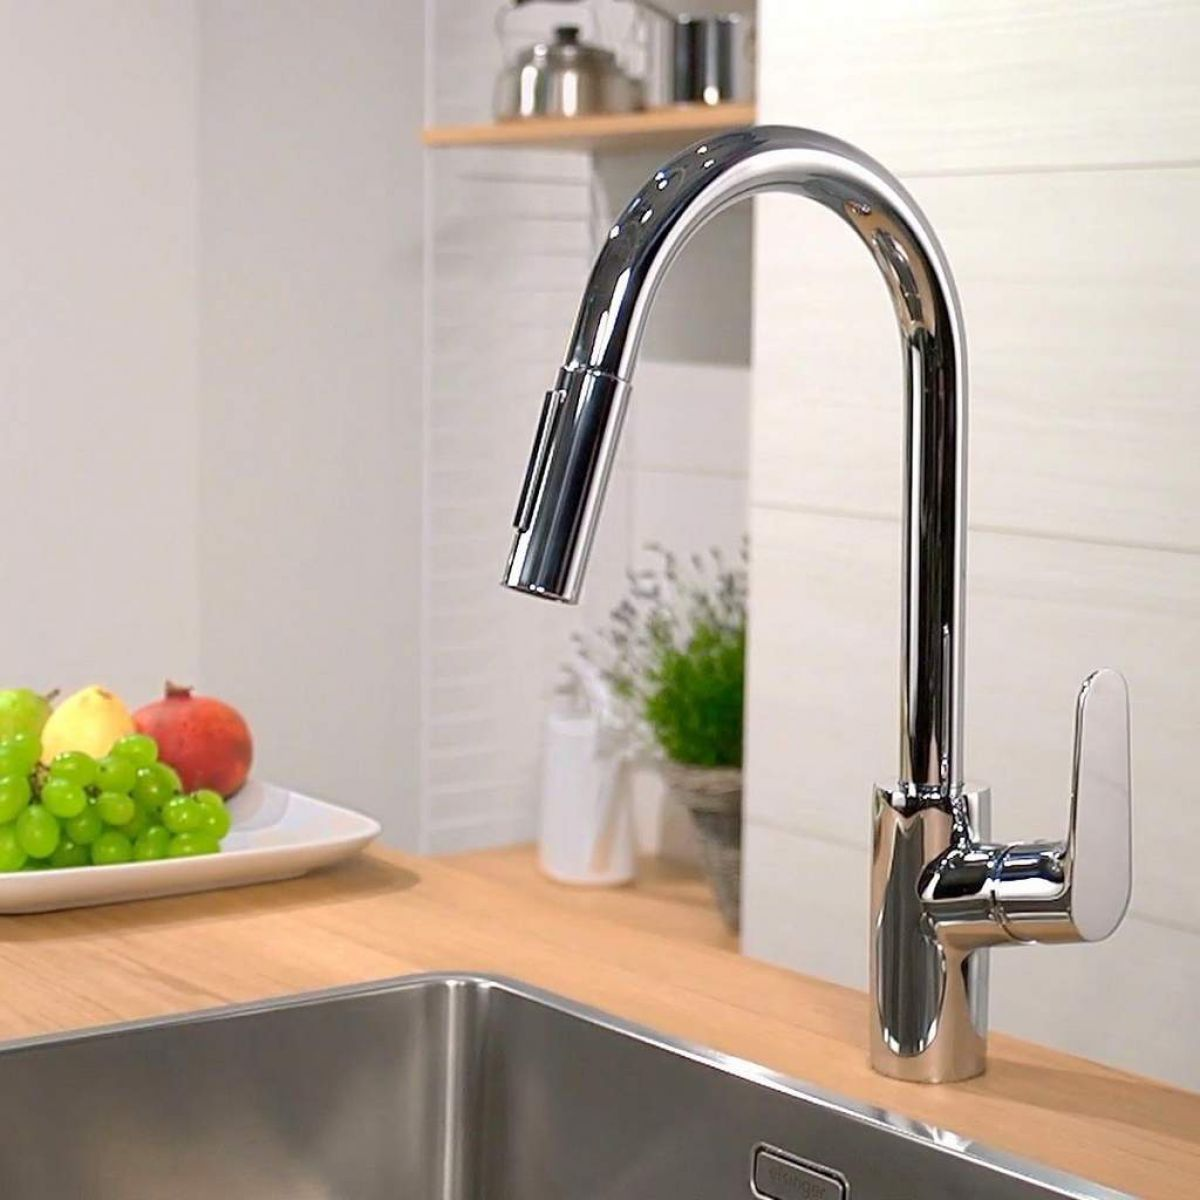 hansgrohe focus single lever kitchen mixer 240 with pull out spray uk bathrooms. Black Bedroom Furniture Sets. Home Design Ideas